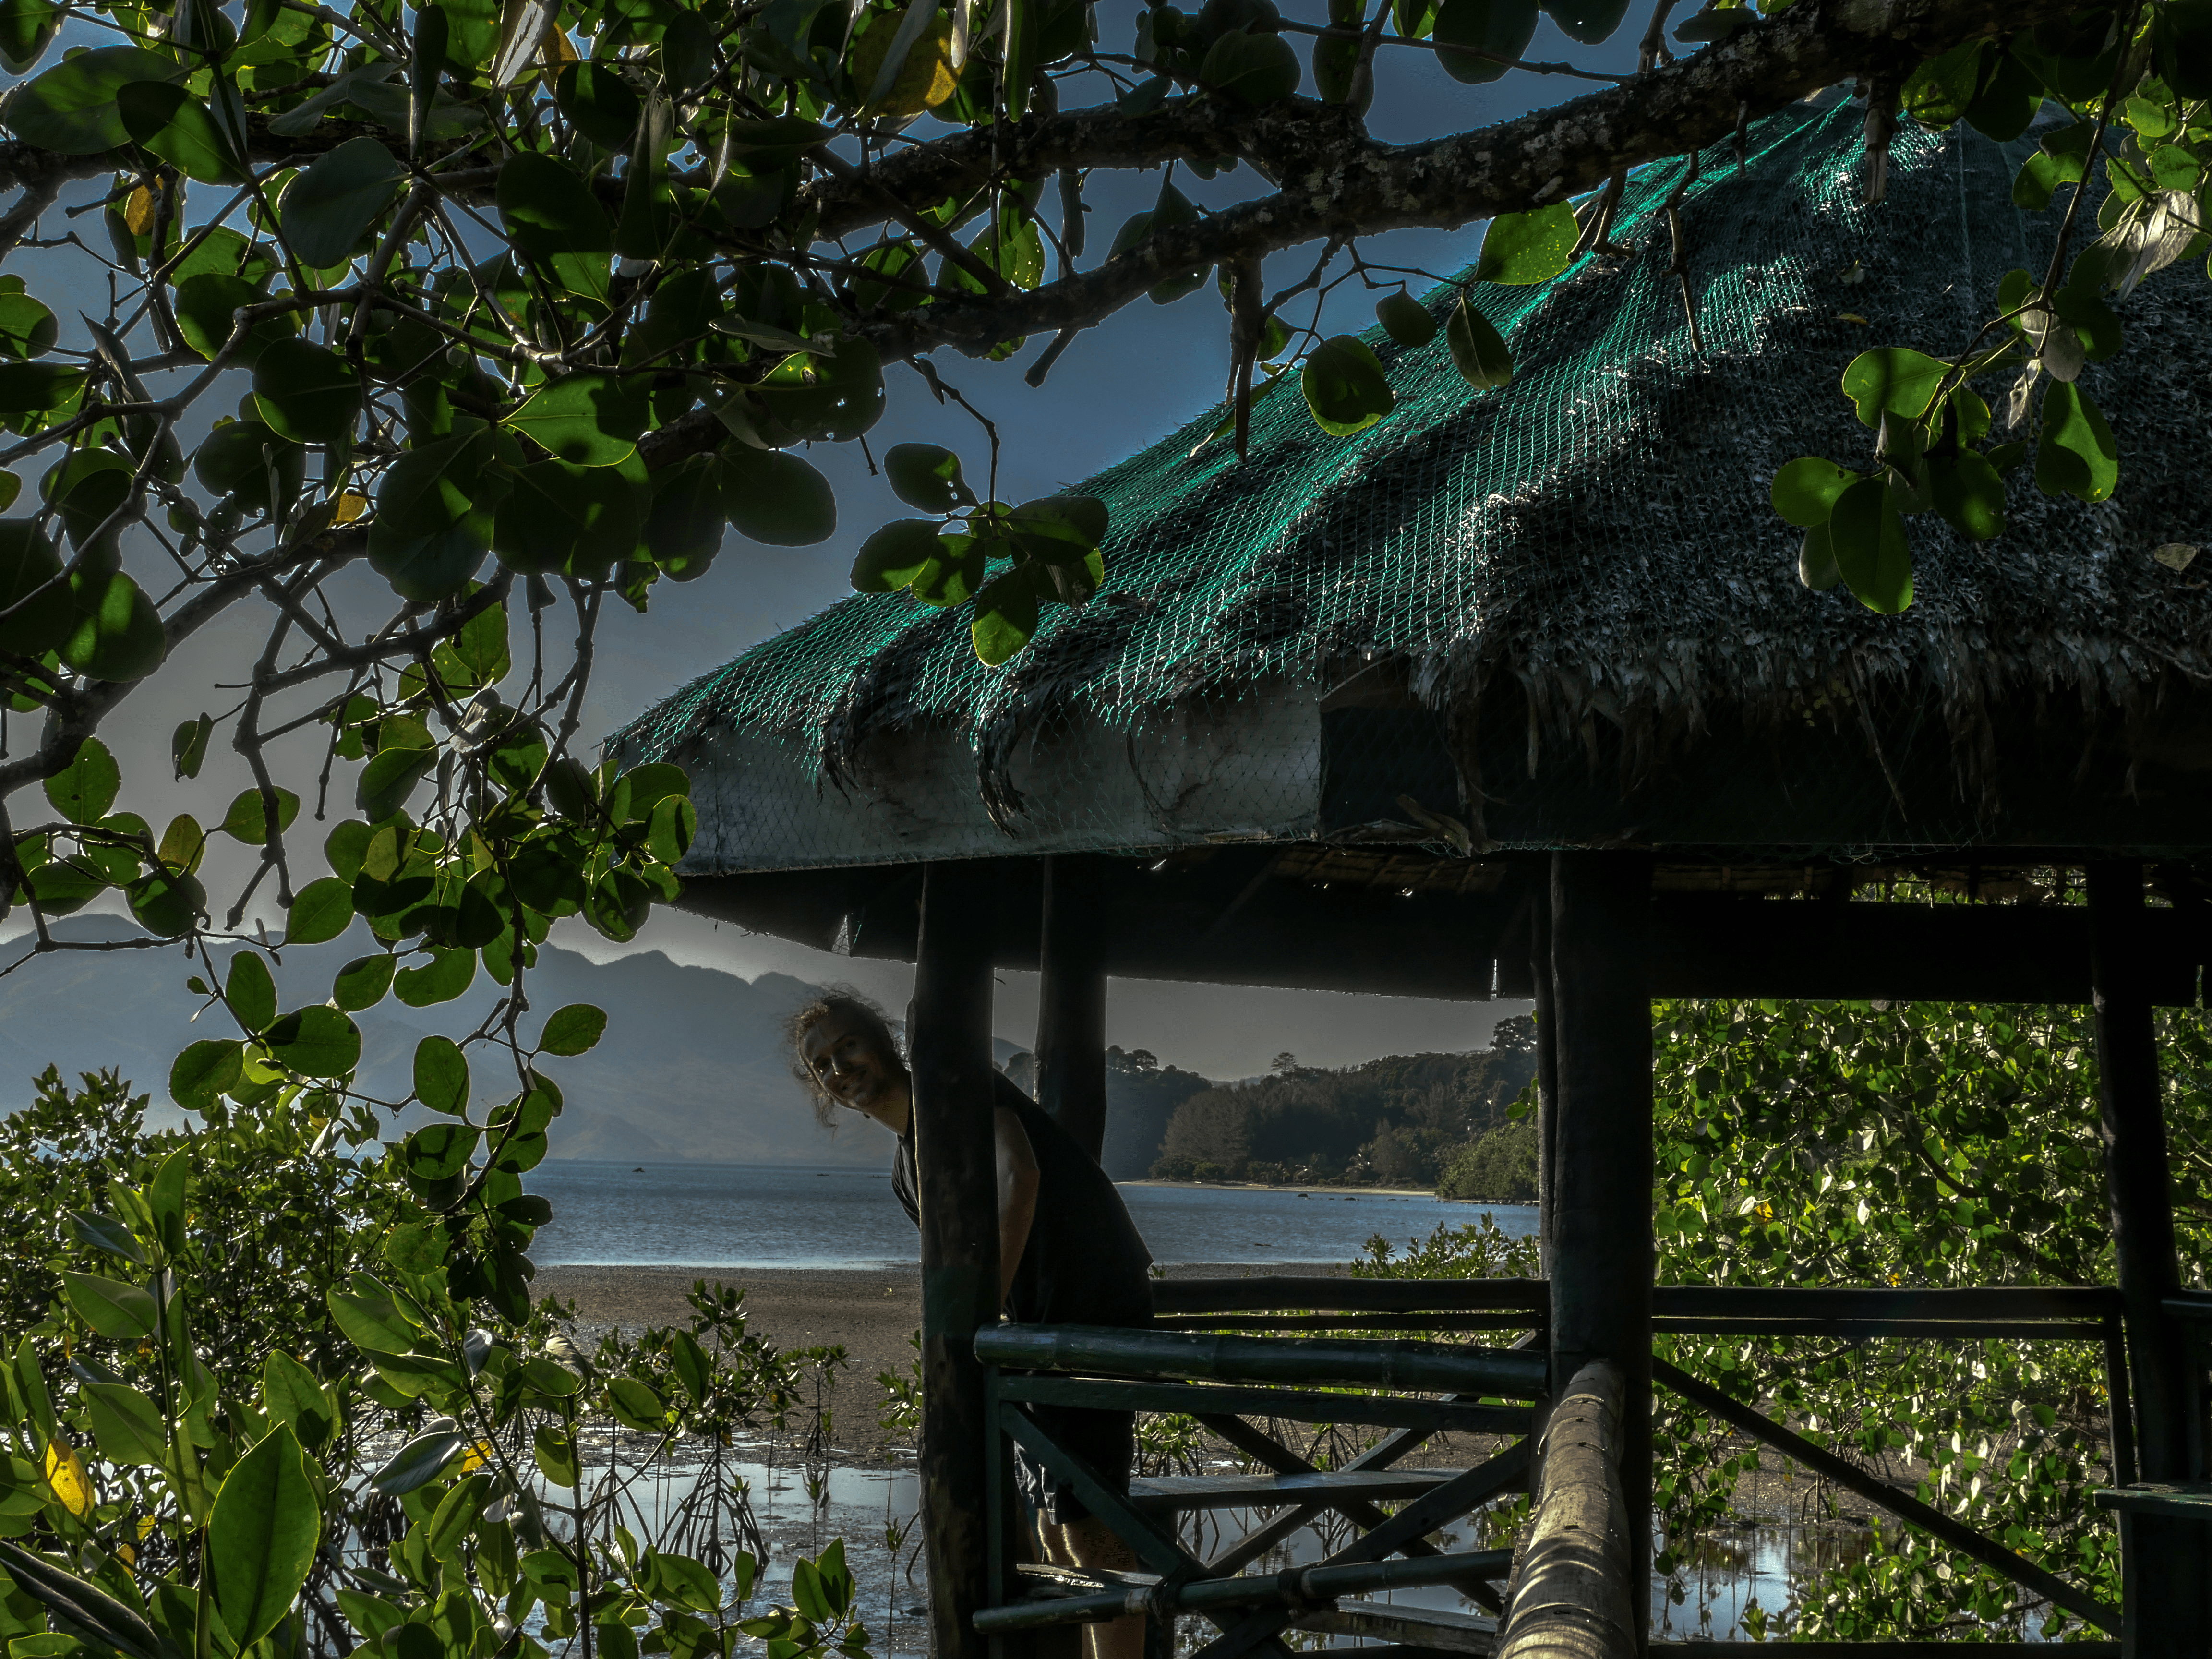 lenny through paradise smiling in little hut in triboa bay mangrove park in subic zambales philippines